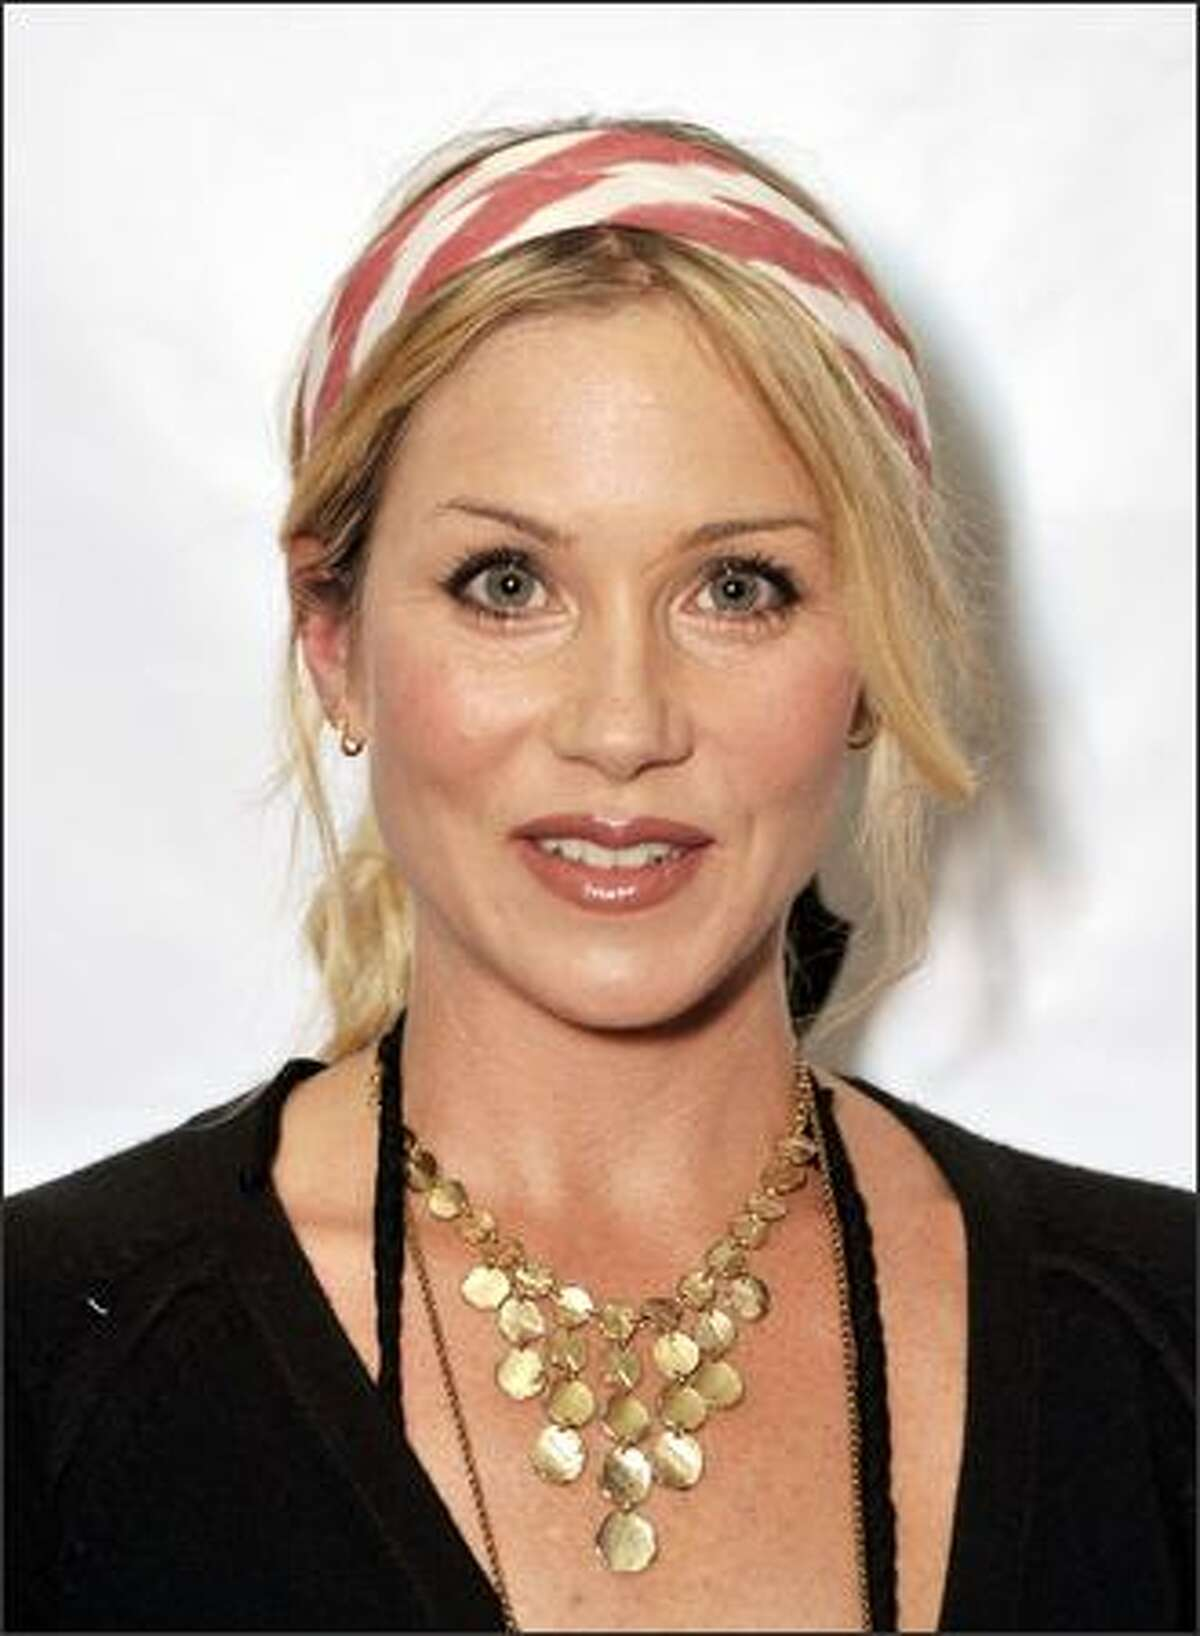 Actress Christina Applegate arrives at Shakespeare Festival/LA's Simply Shakespeare 2009 'The Comedy of Errors' at The Geffen Playhouse in Los Angeles, California.